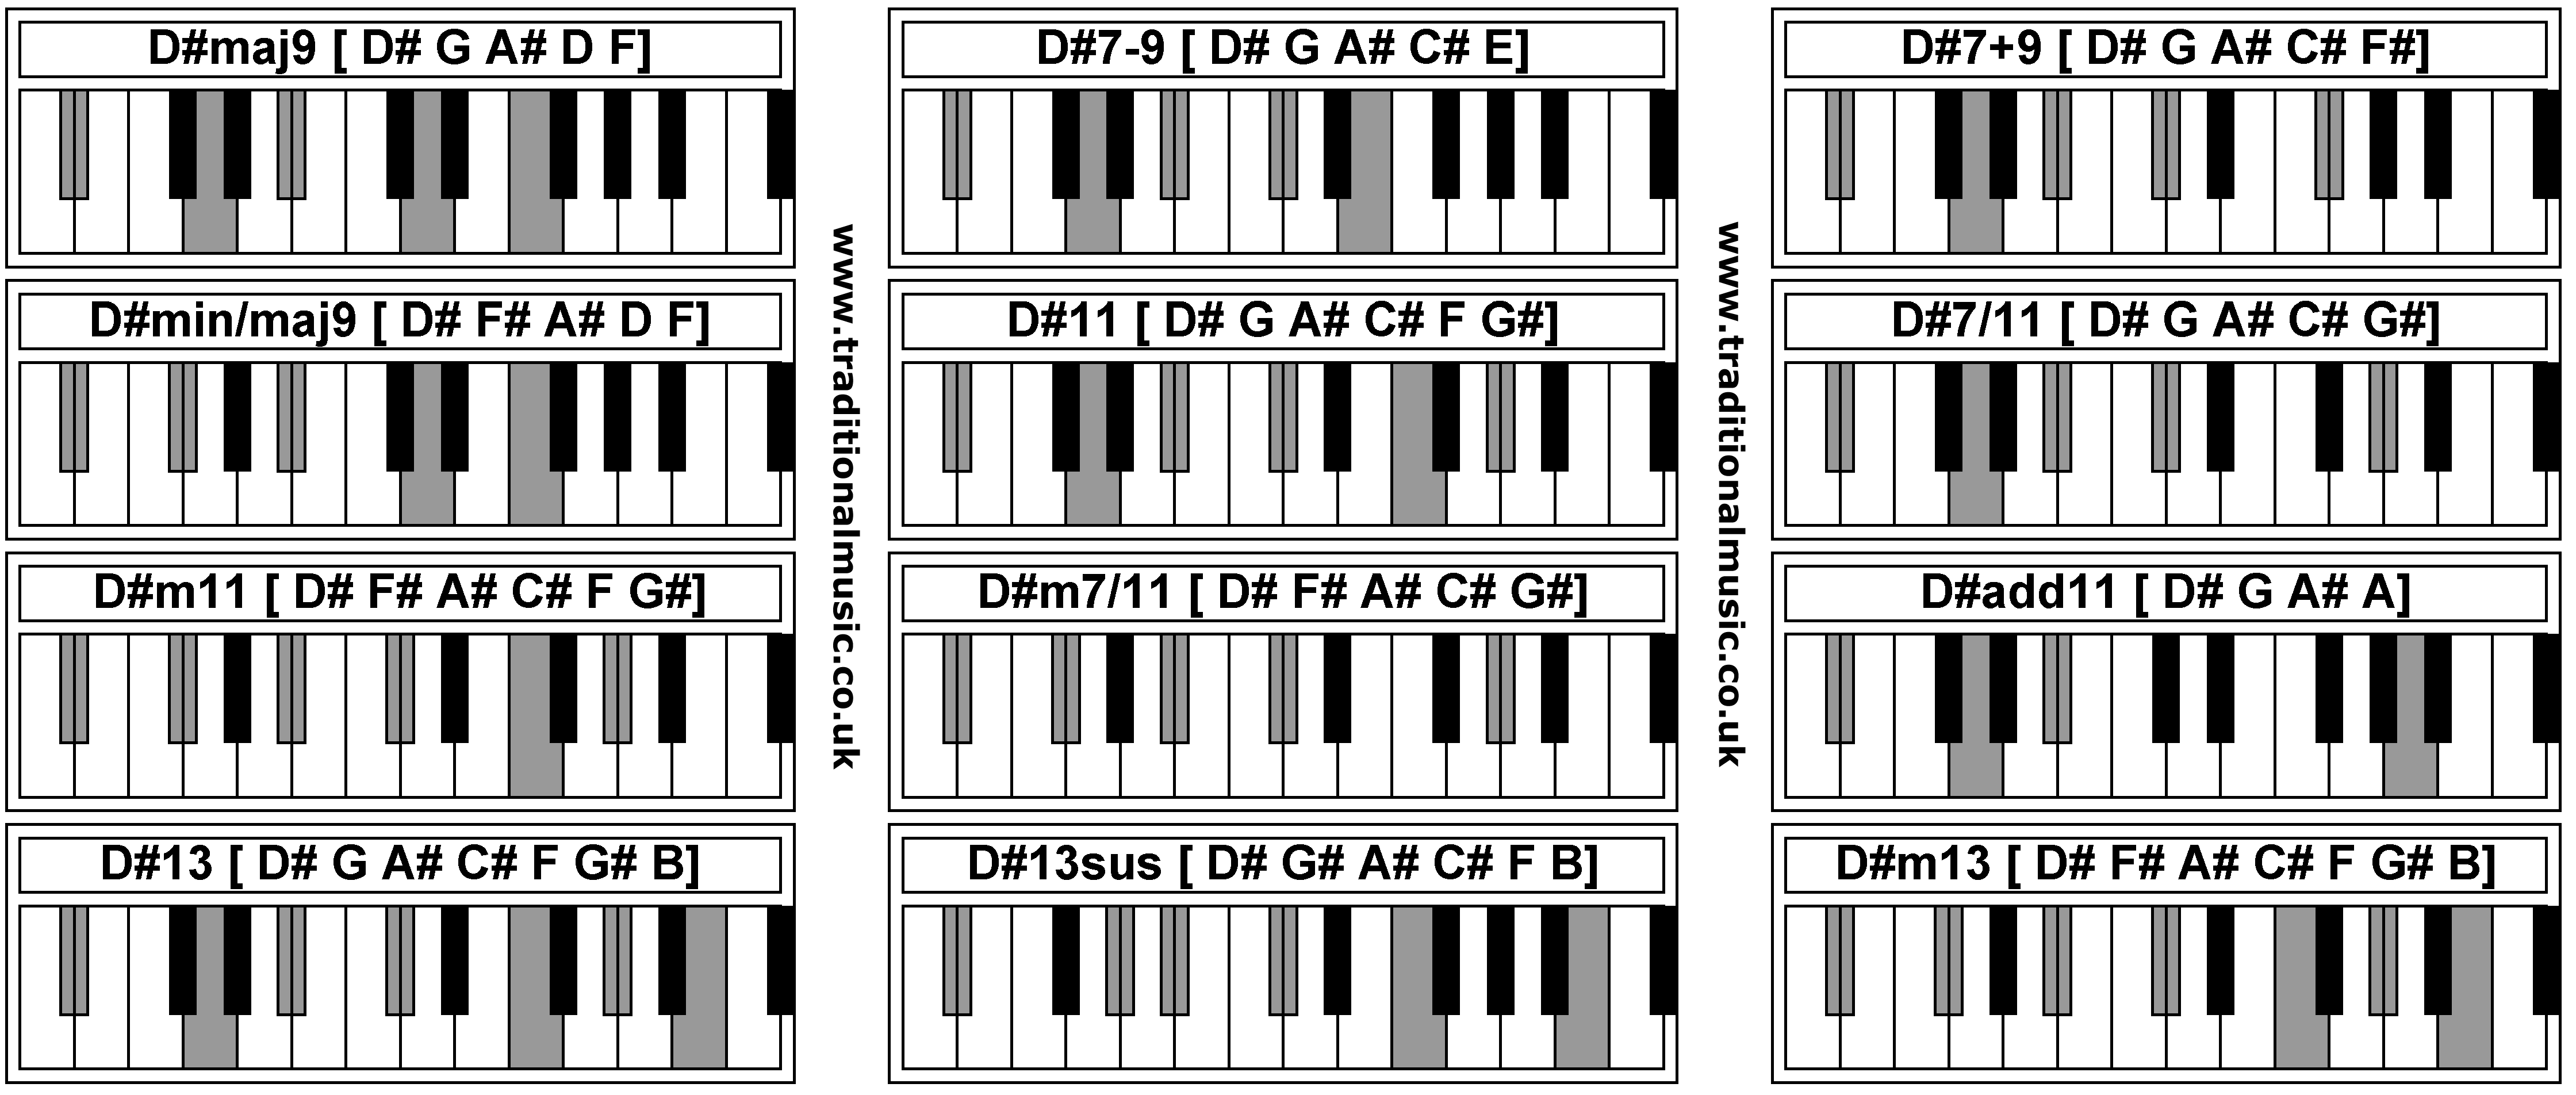 photo regarding Printable Piano Chord Chart named Piano Chords - D#maj9 D#7-9 D#7+9 D#min/maj9 D#11